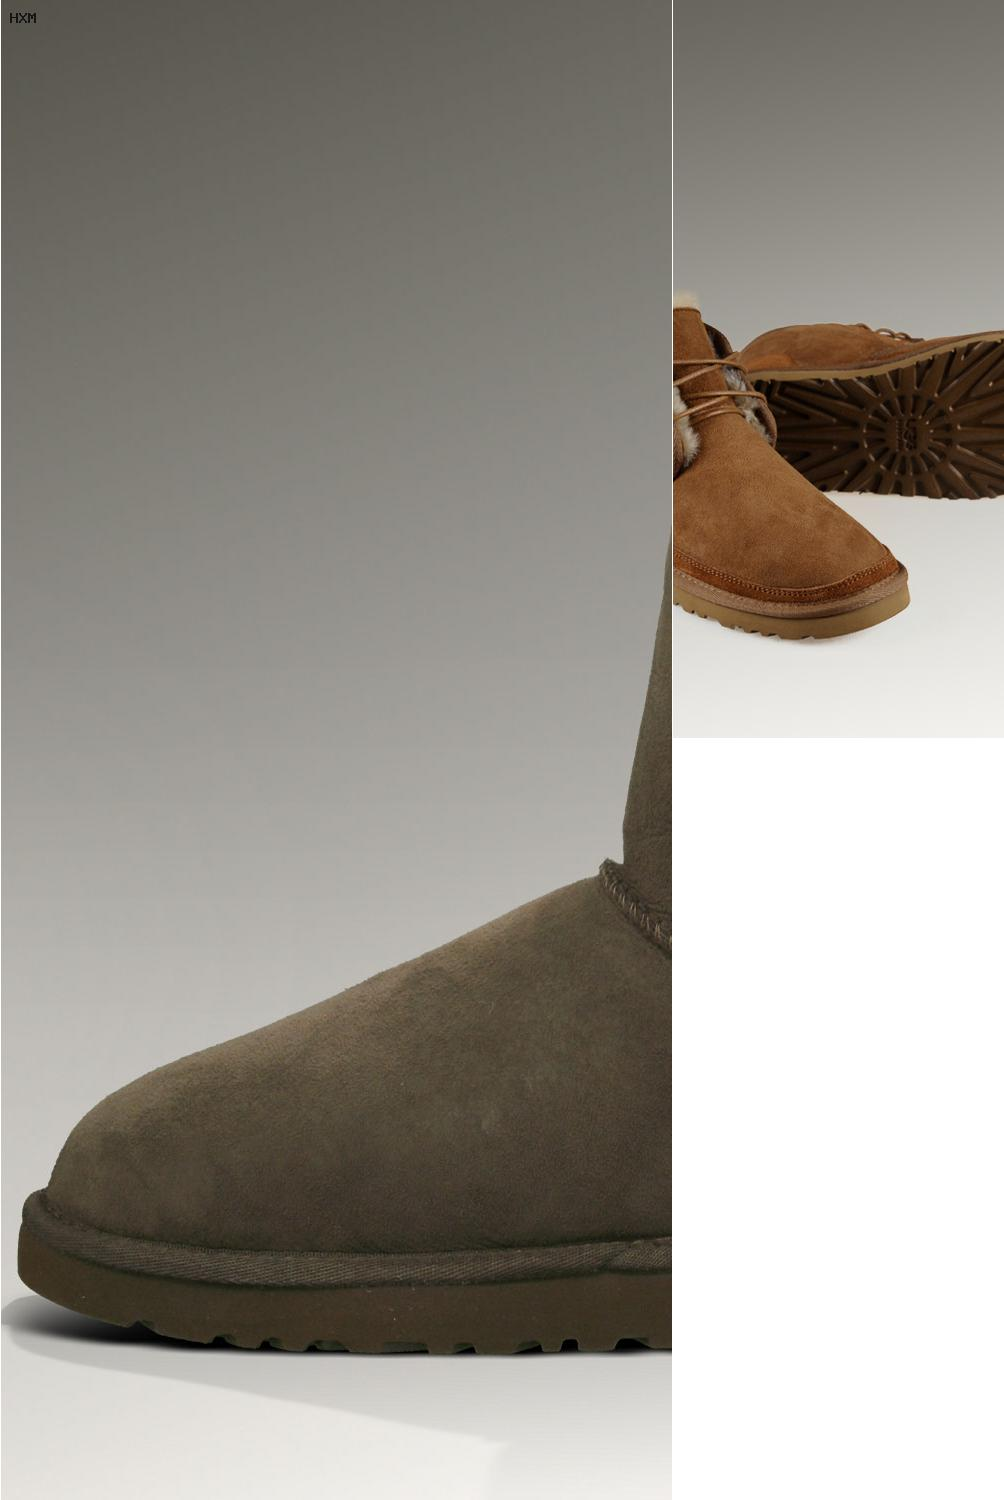 imitation ugg boots offers